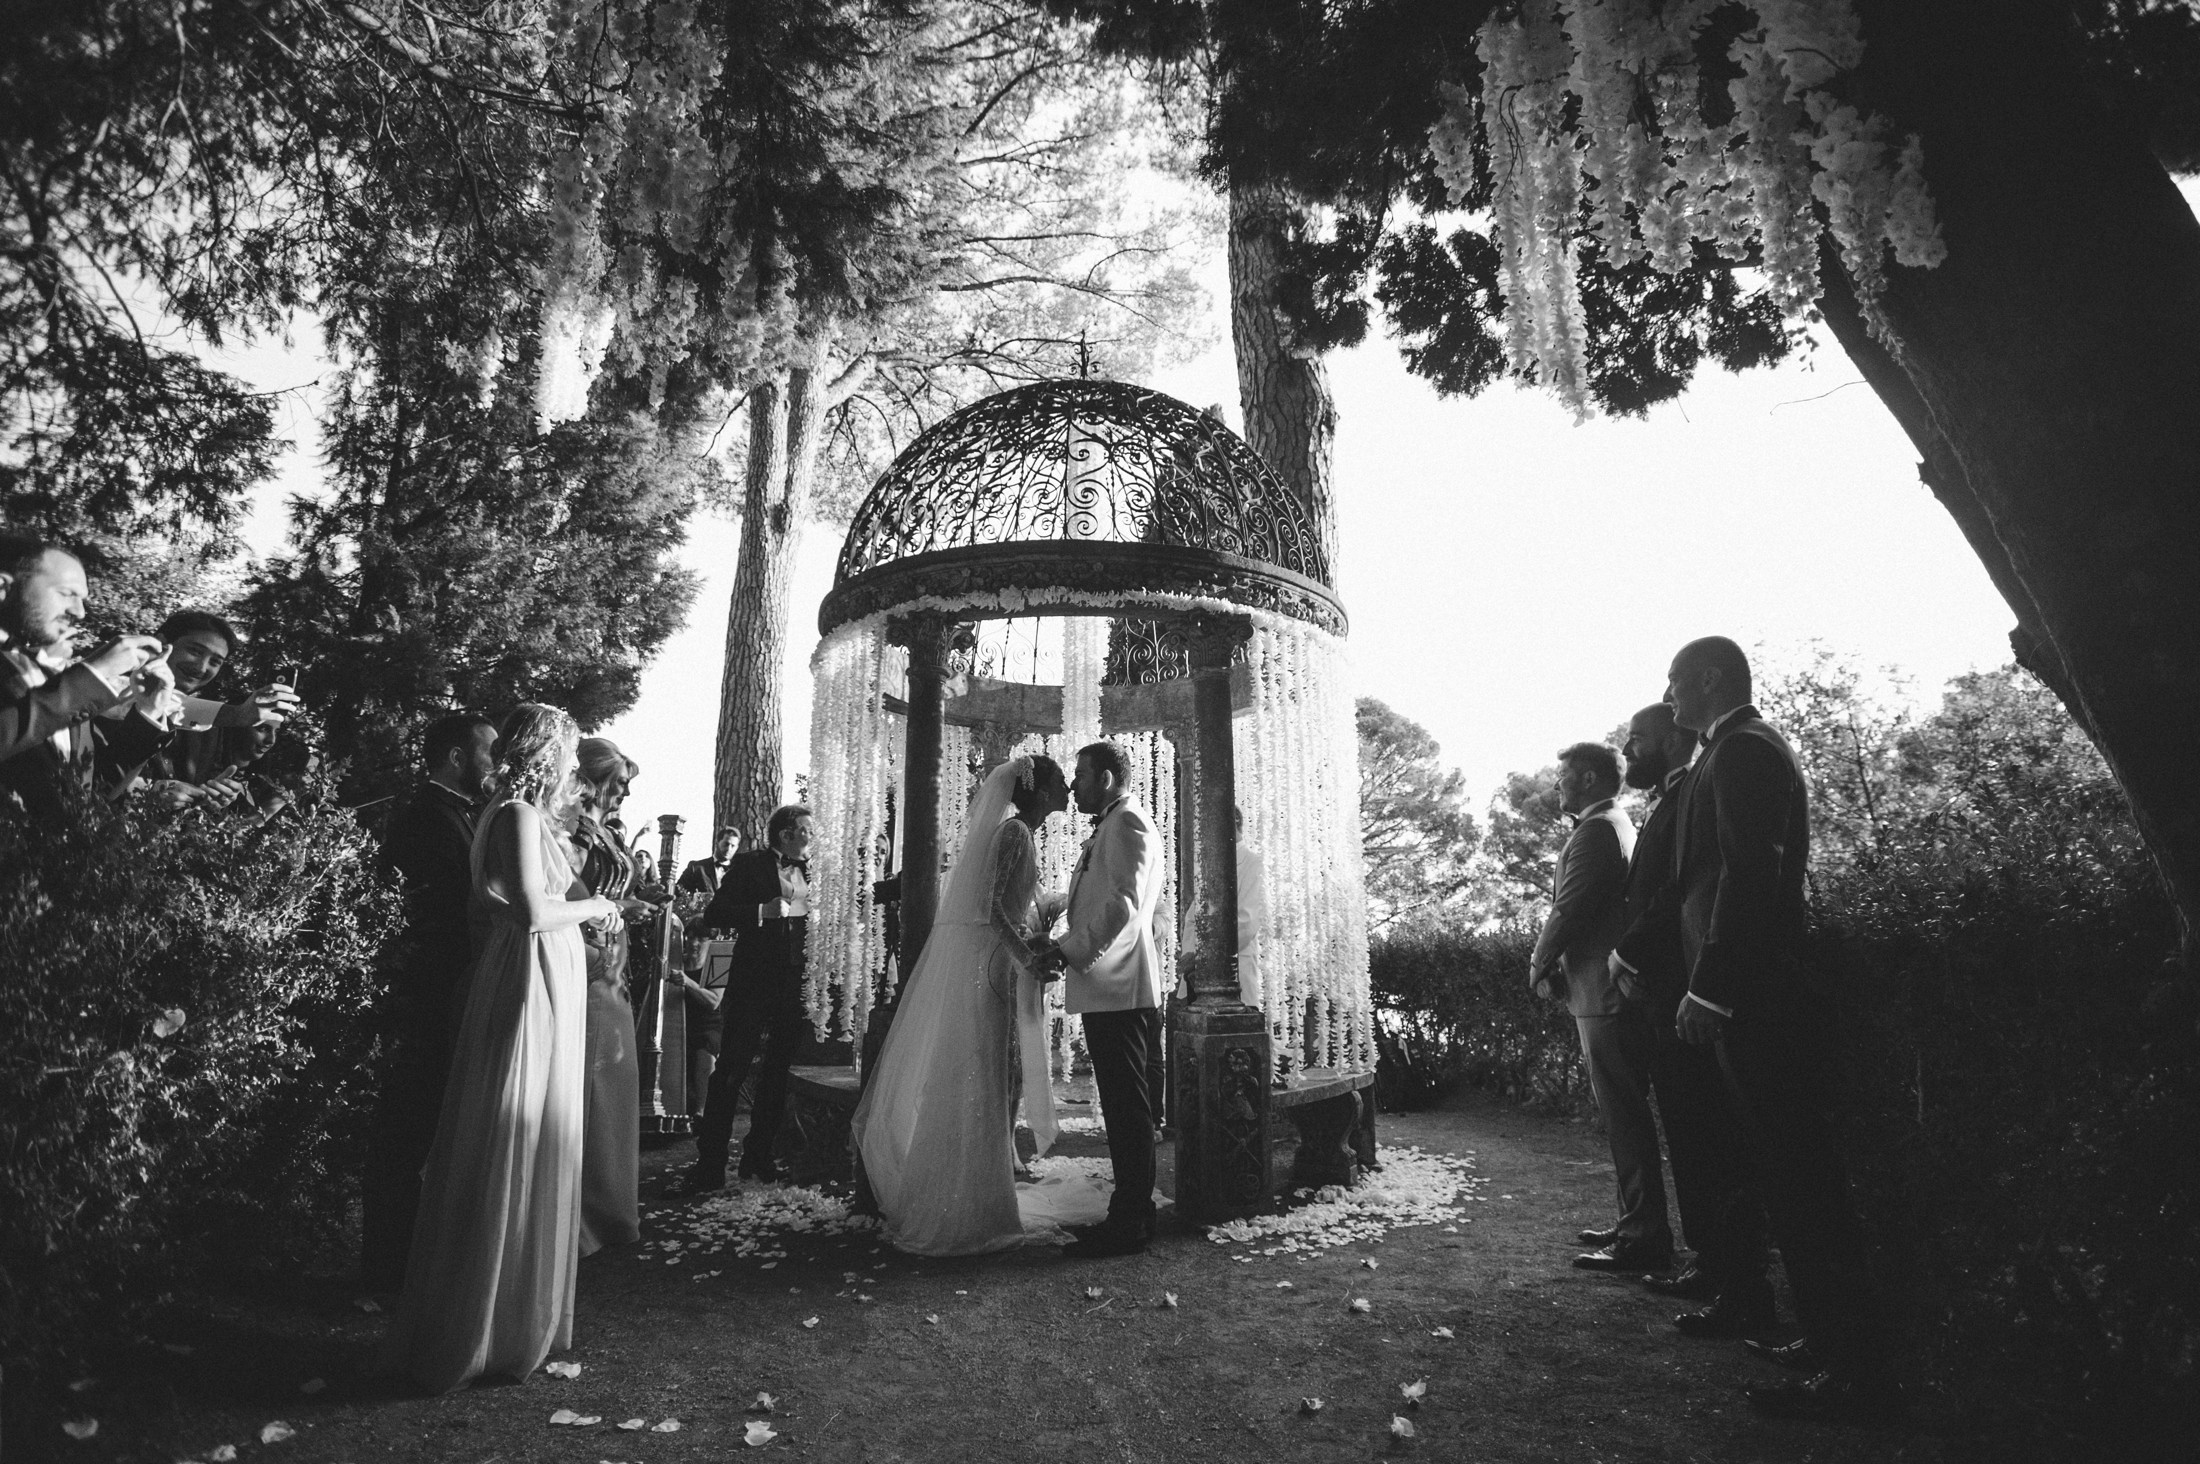 luxury wedding the bride and the groom during the wedding ceremony in villa cimbrone ravello